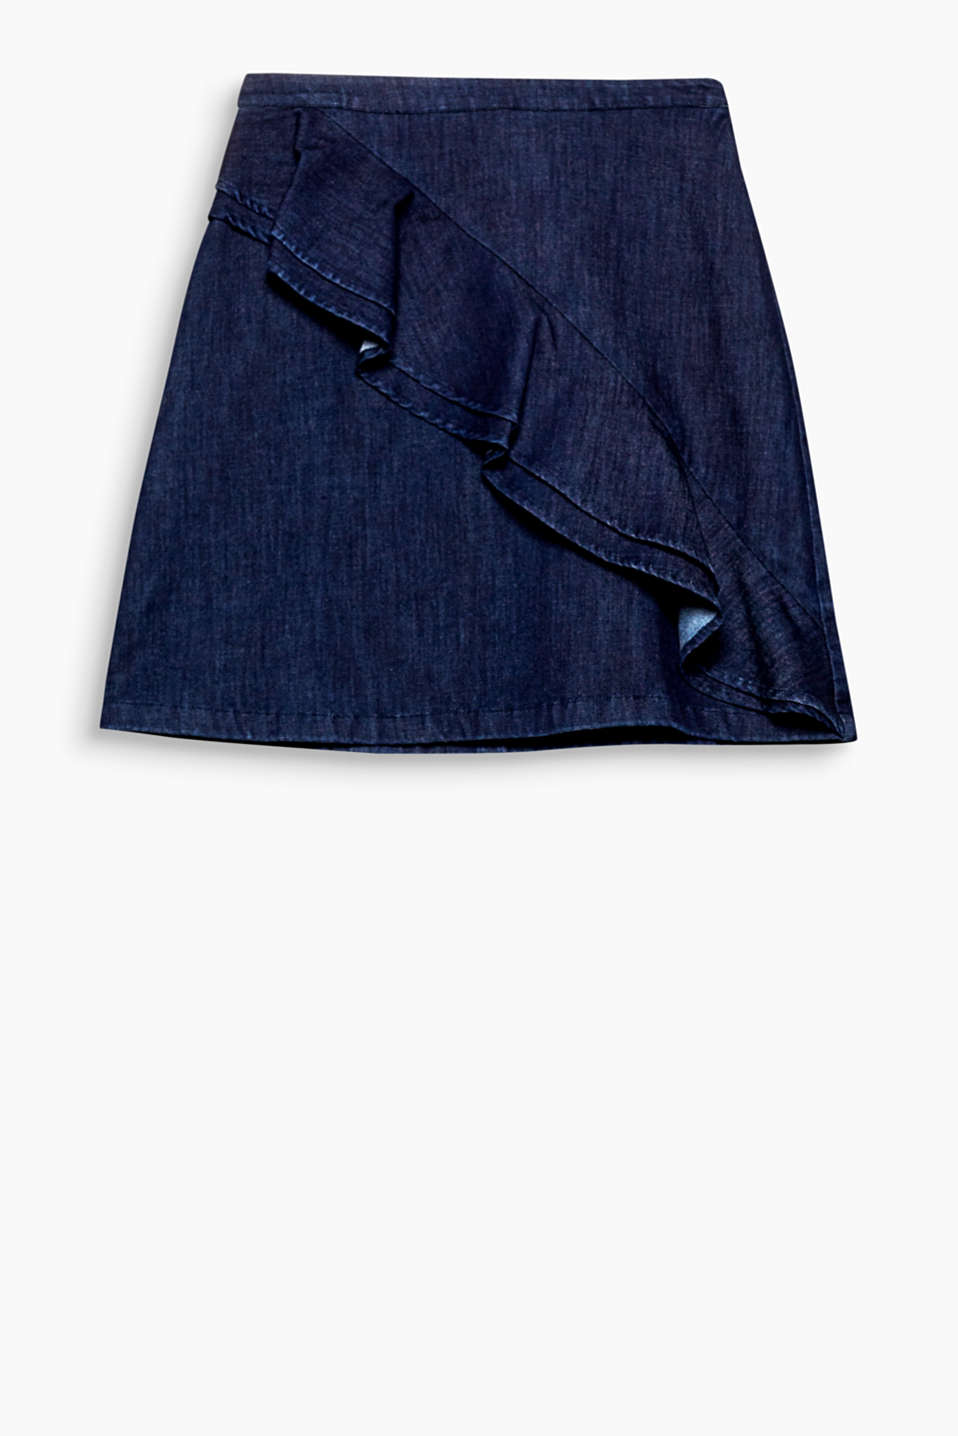 A decorative frill gives this flared denim skirt the perfect amount of pretty feminine style.